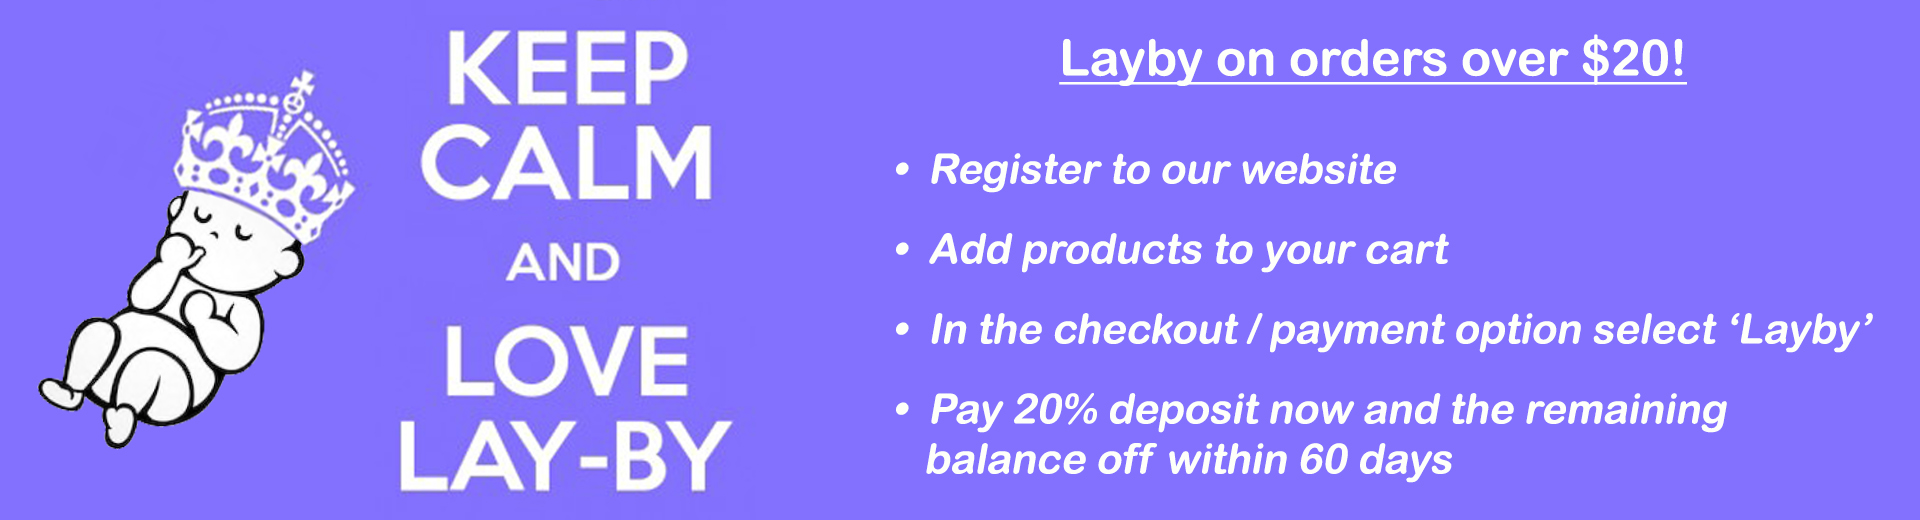 catalog/Gift Vouchers/Layby.png